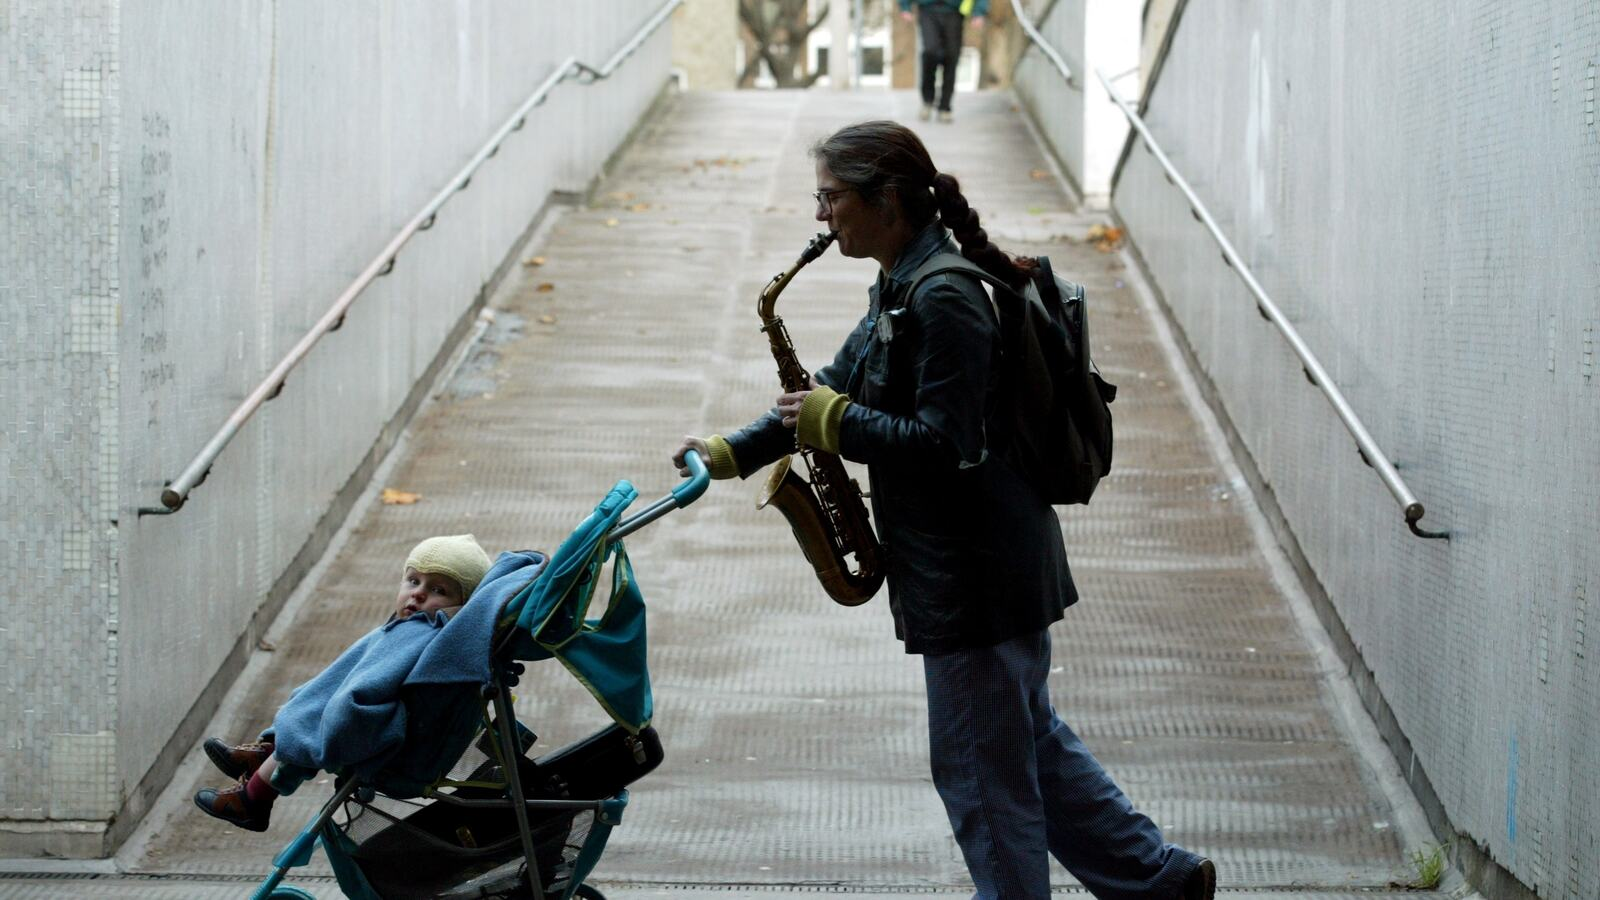 A man with saxophone pushing a child in a buggy